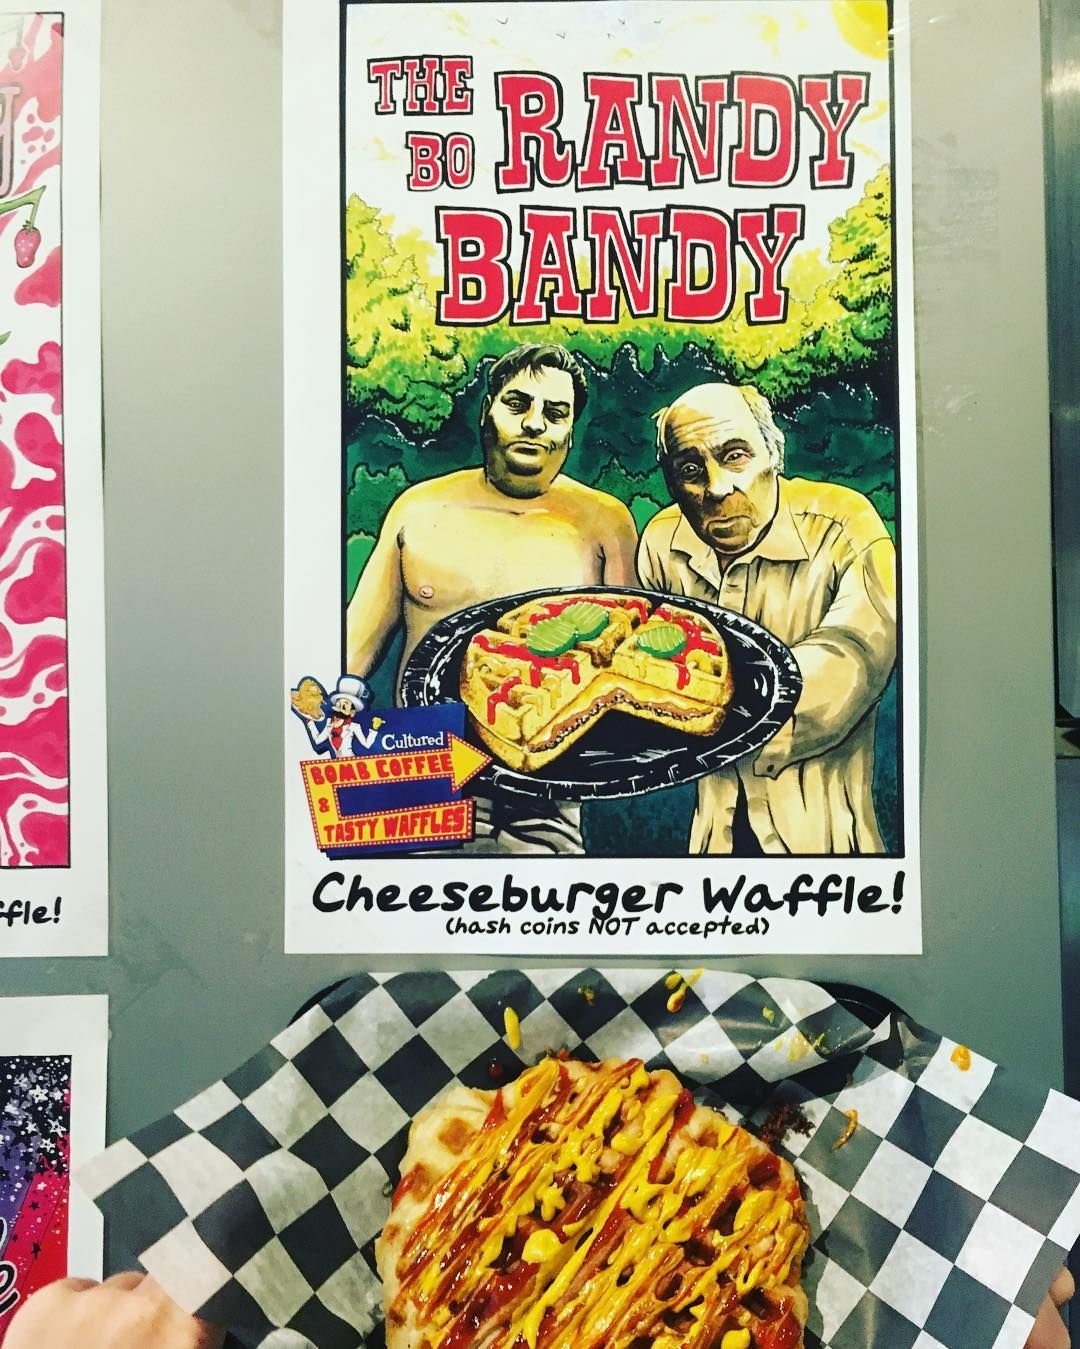 CHEESEBURGER WAFFLE IS HERE! Come try the new addition to the menu. #randybobandy #cheeseburgerwaffle #waffleparkboys